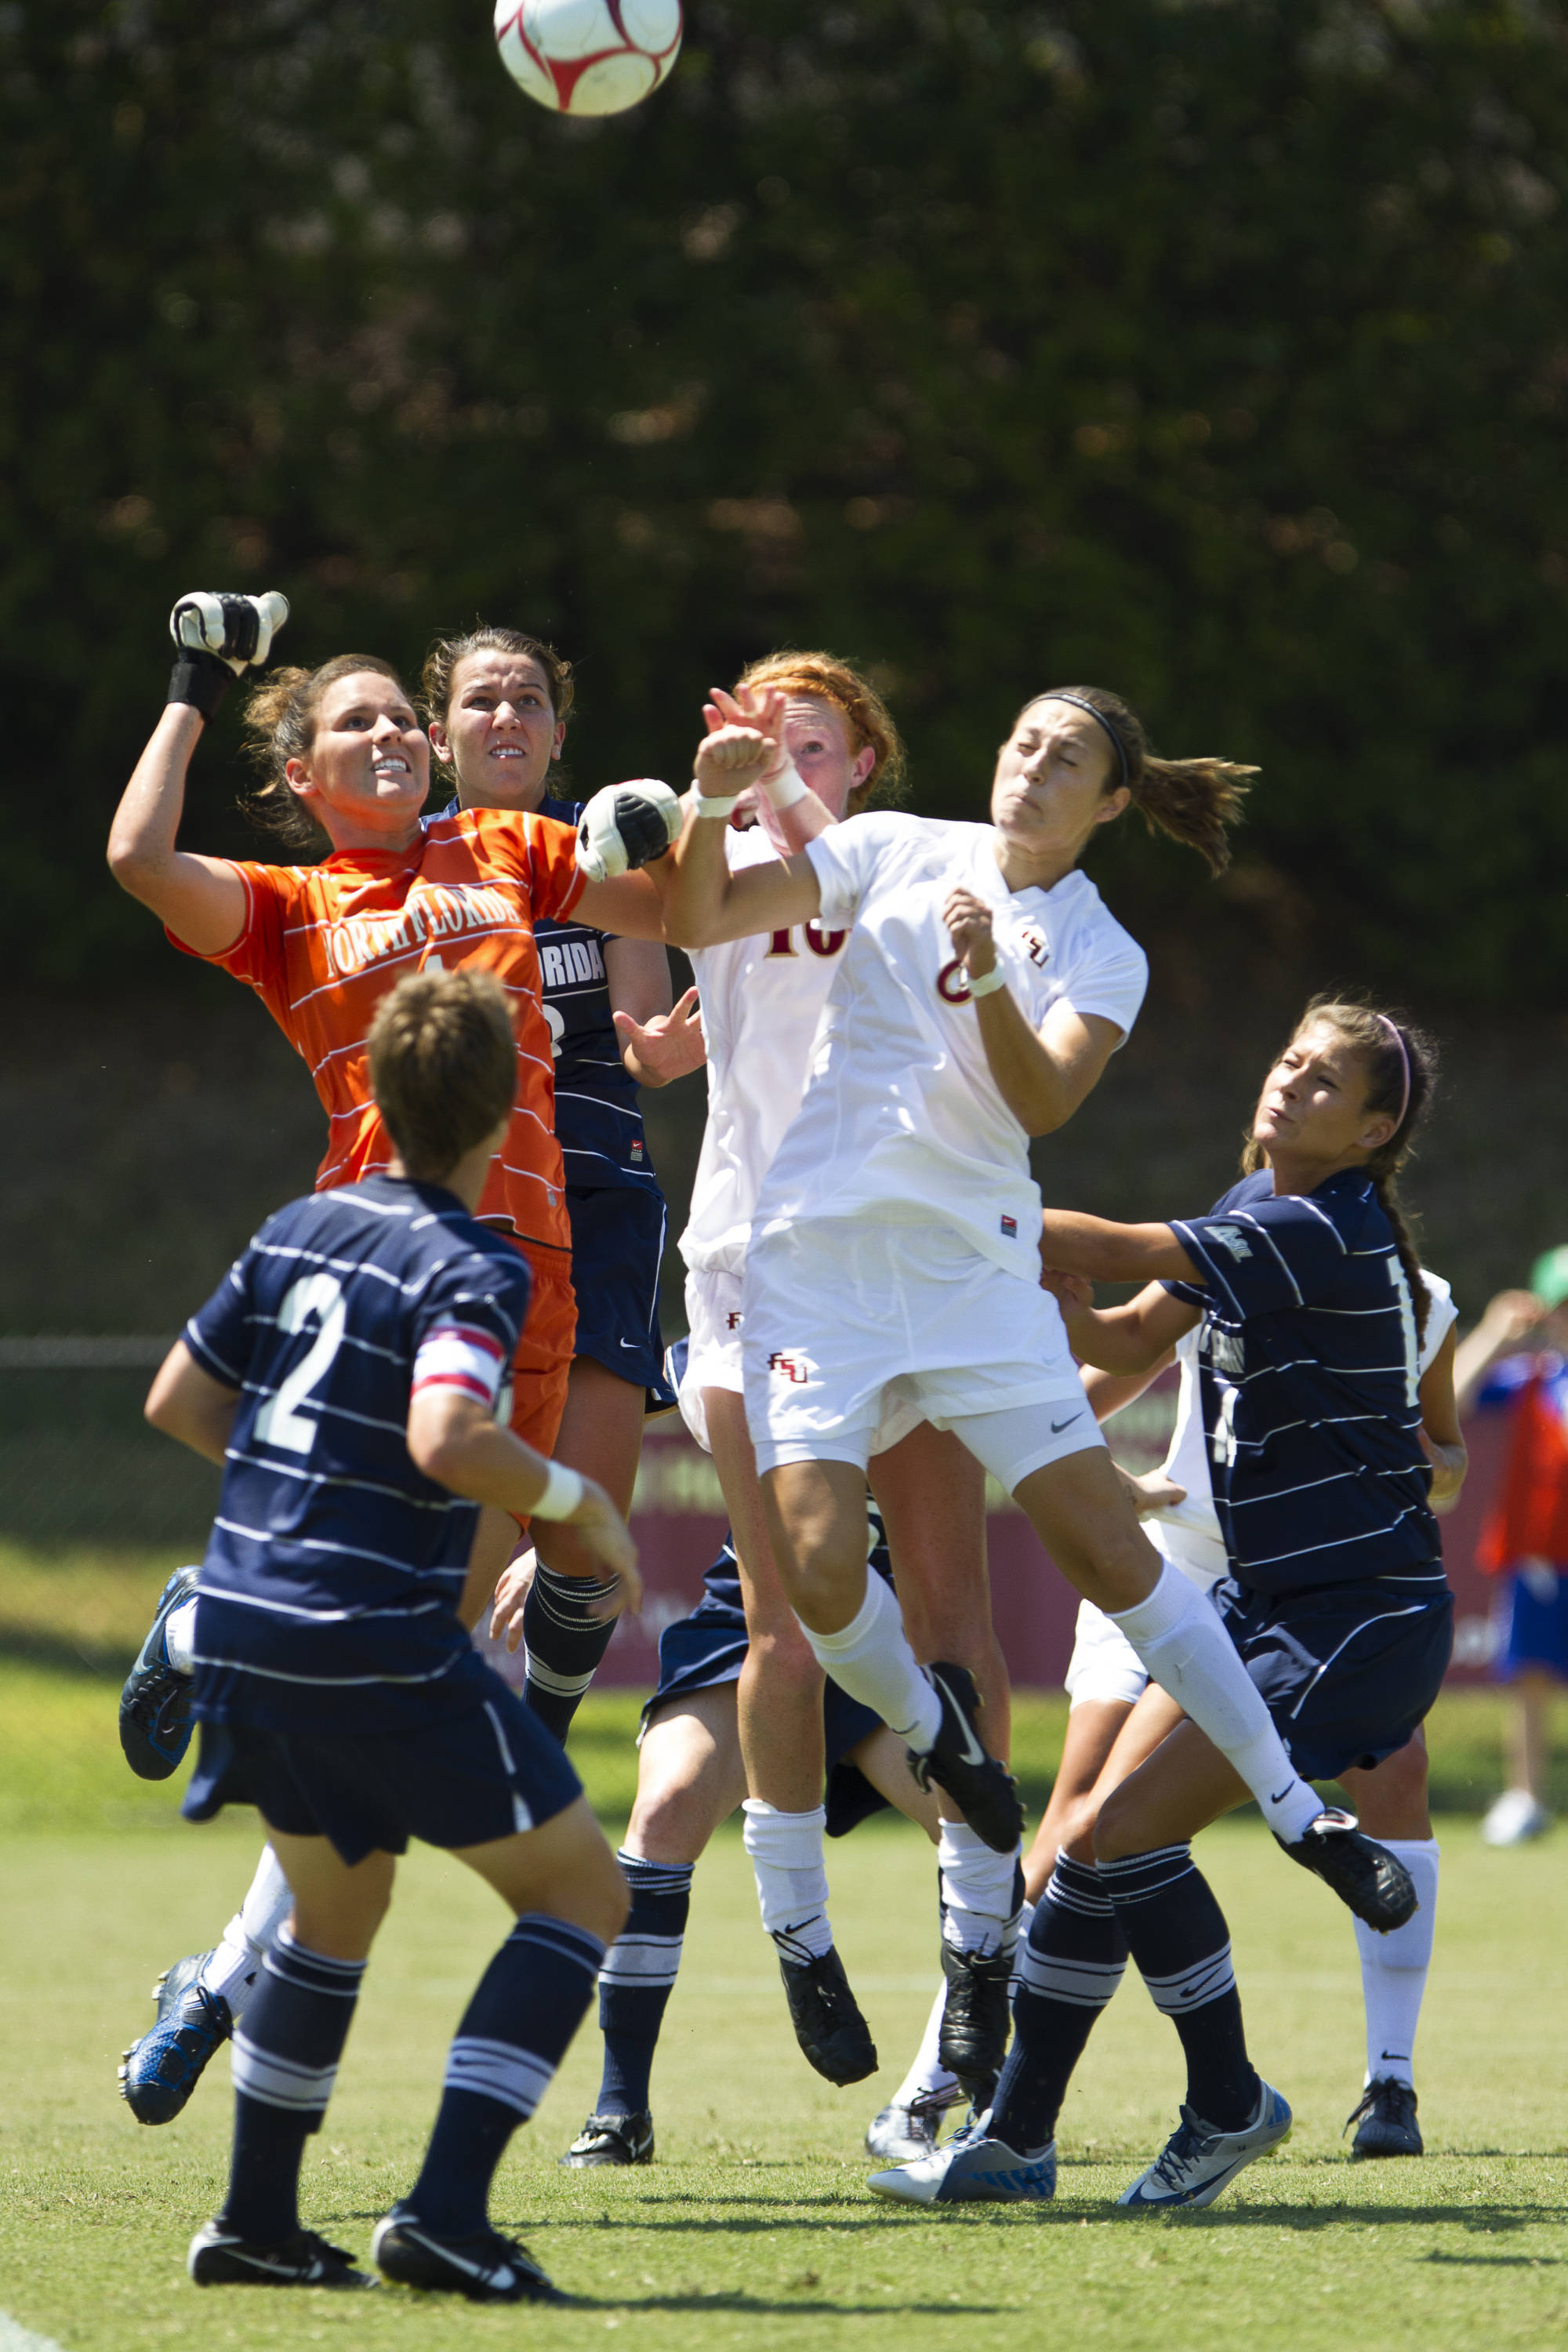 Katya Gokhman (8) and Tori Huster (10) challenge the keeper from North Florida for a ball in Sunday's game.